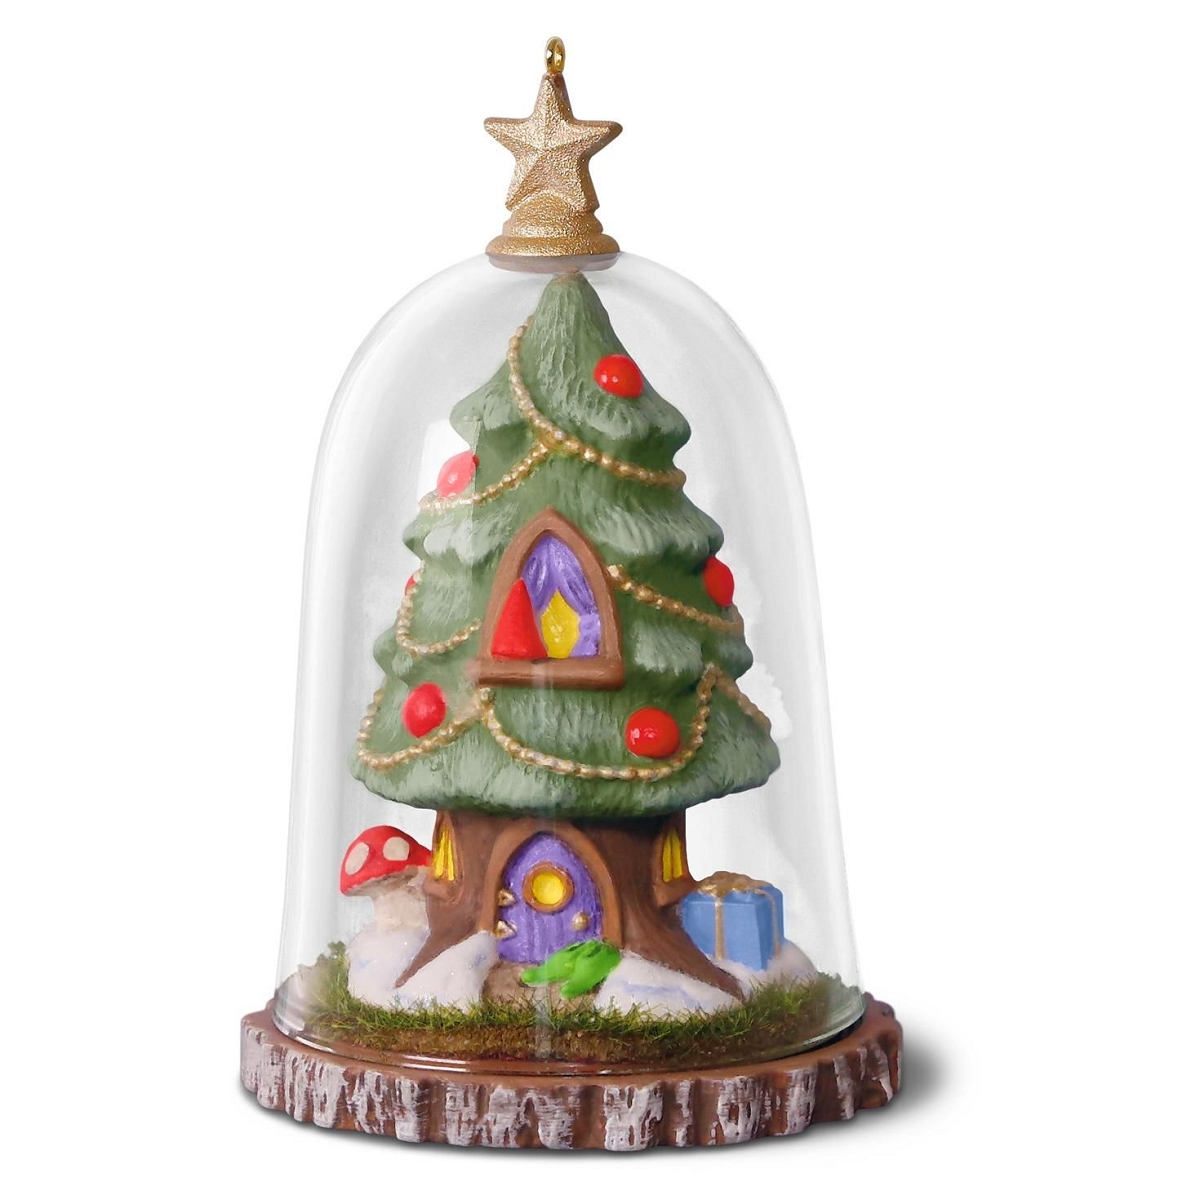 Gnome for the holidays hallmark keepsake miniature